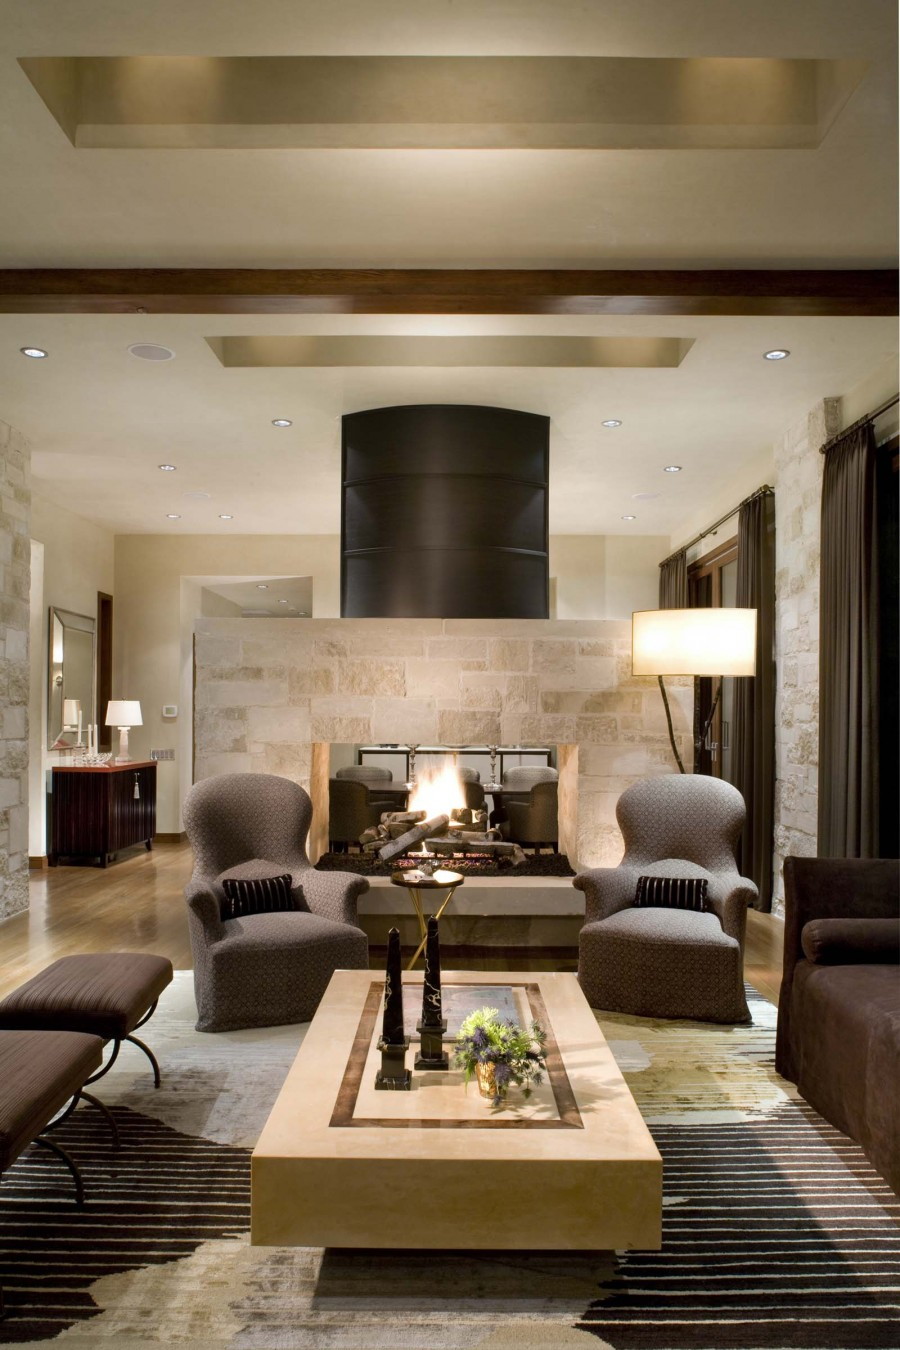 16 fabulous earth tones living room designs decoholic - Modern interior design for living room ...